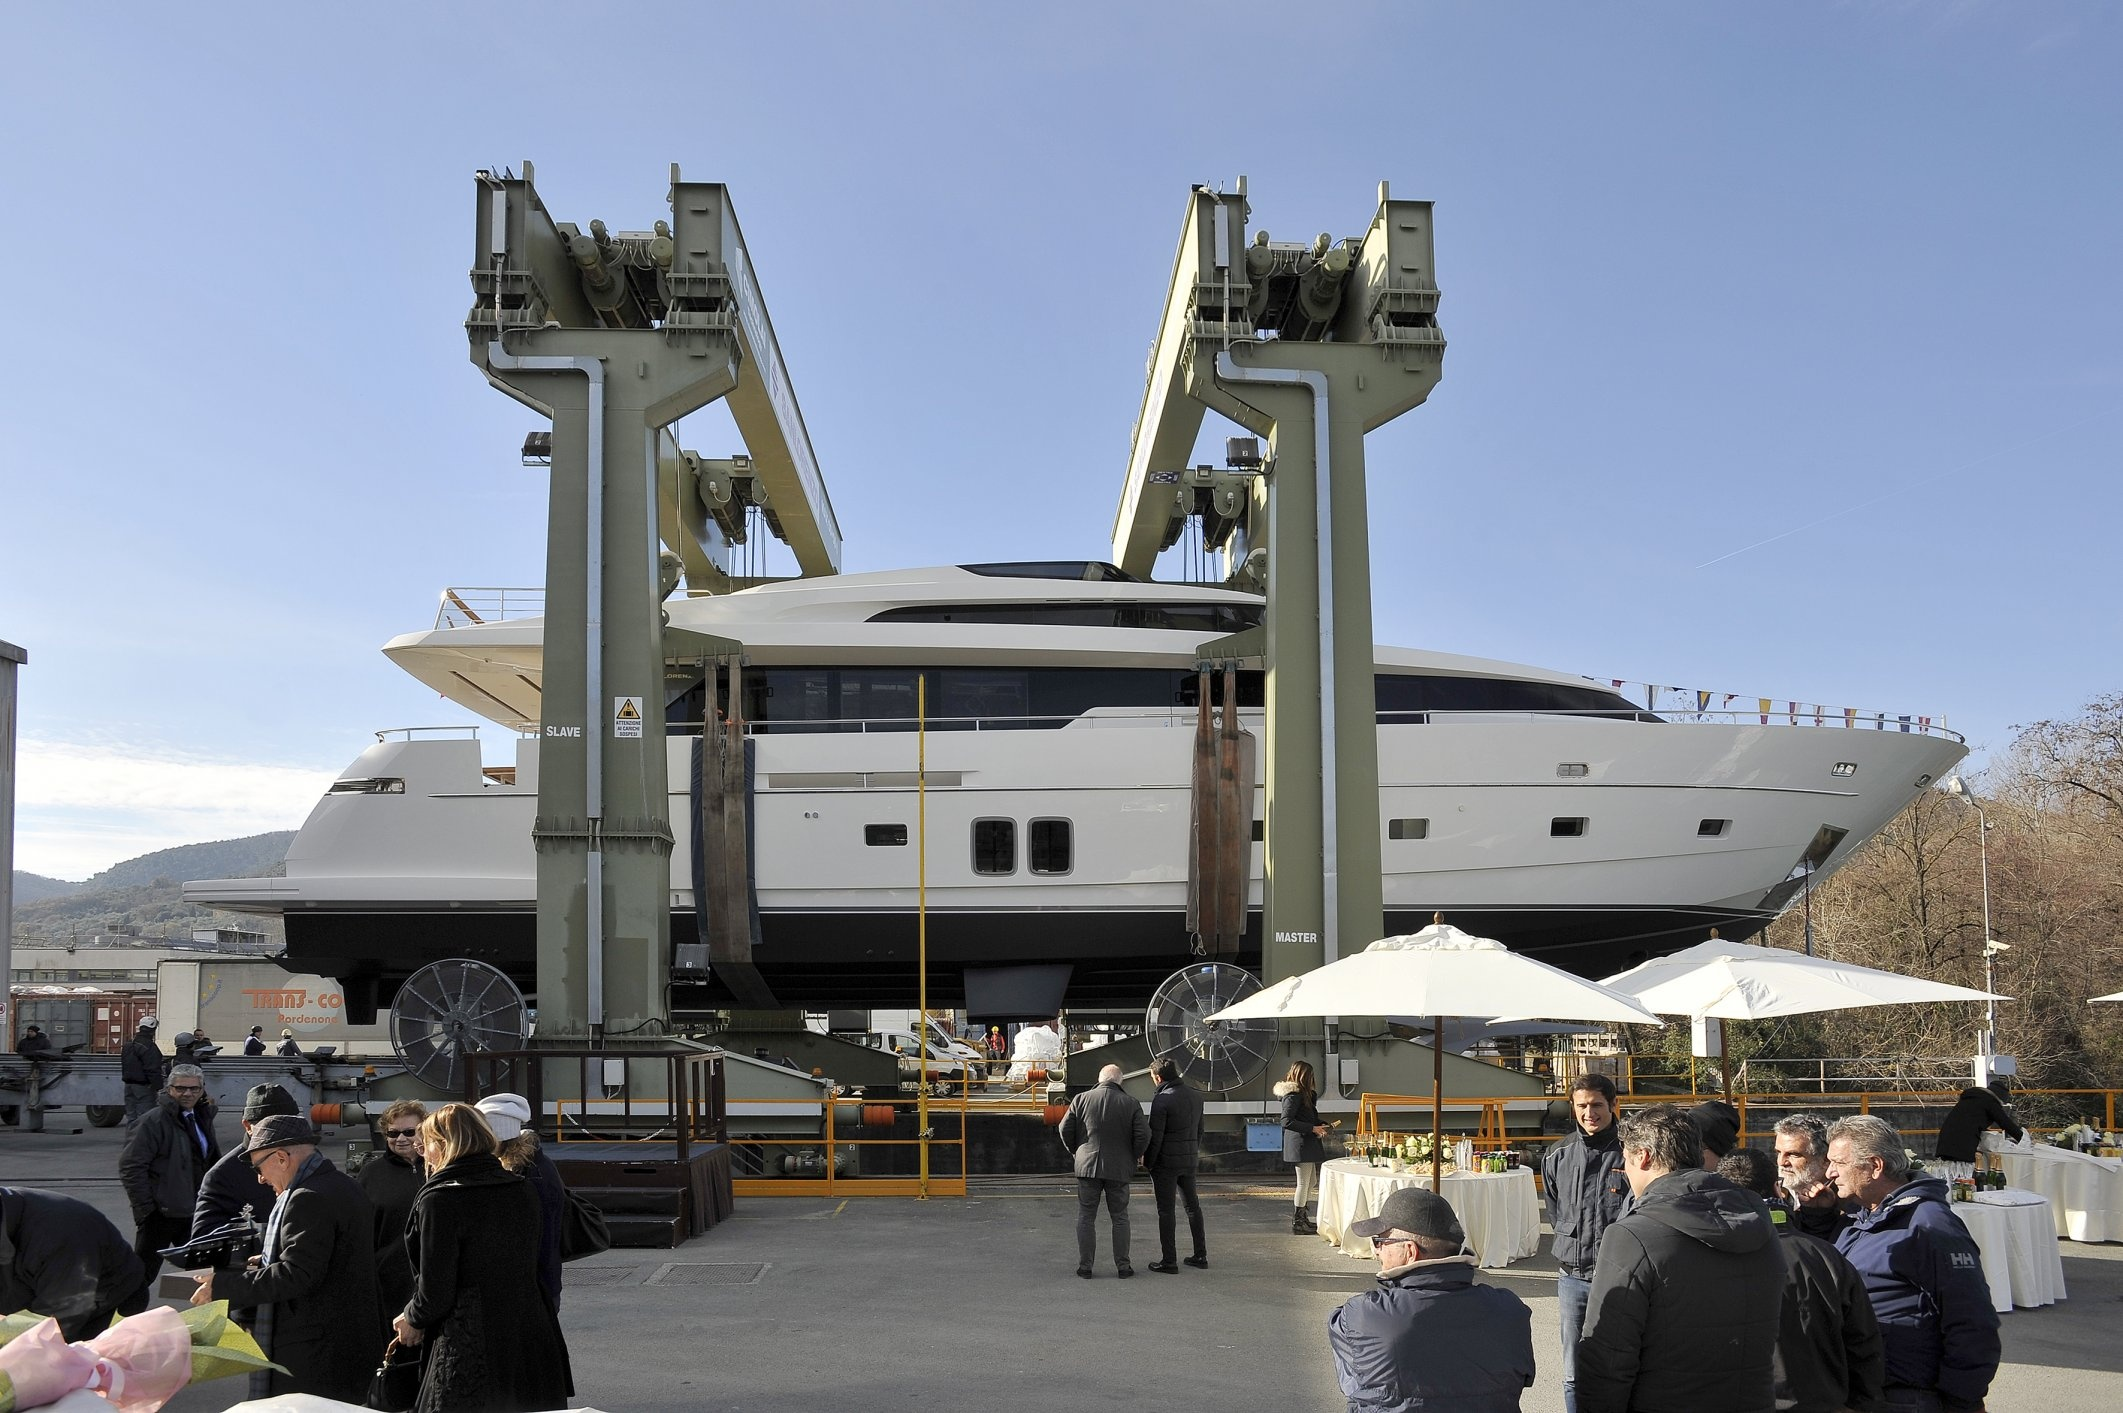 sanlorenzo begins 2016 with launch of blue.. | superyachts